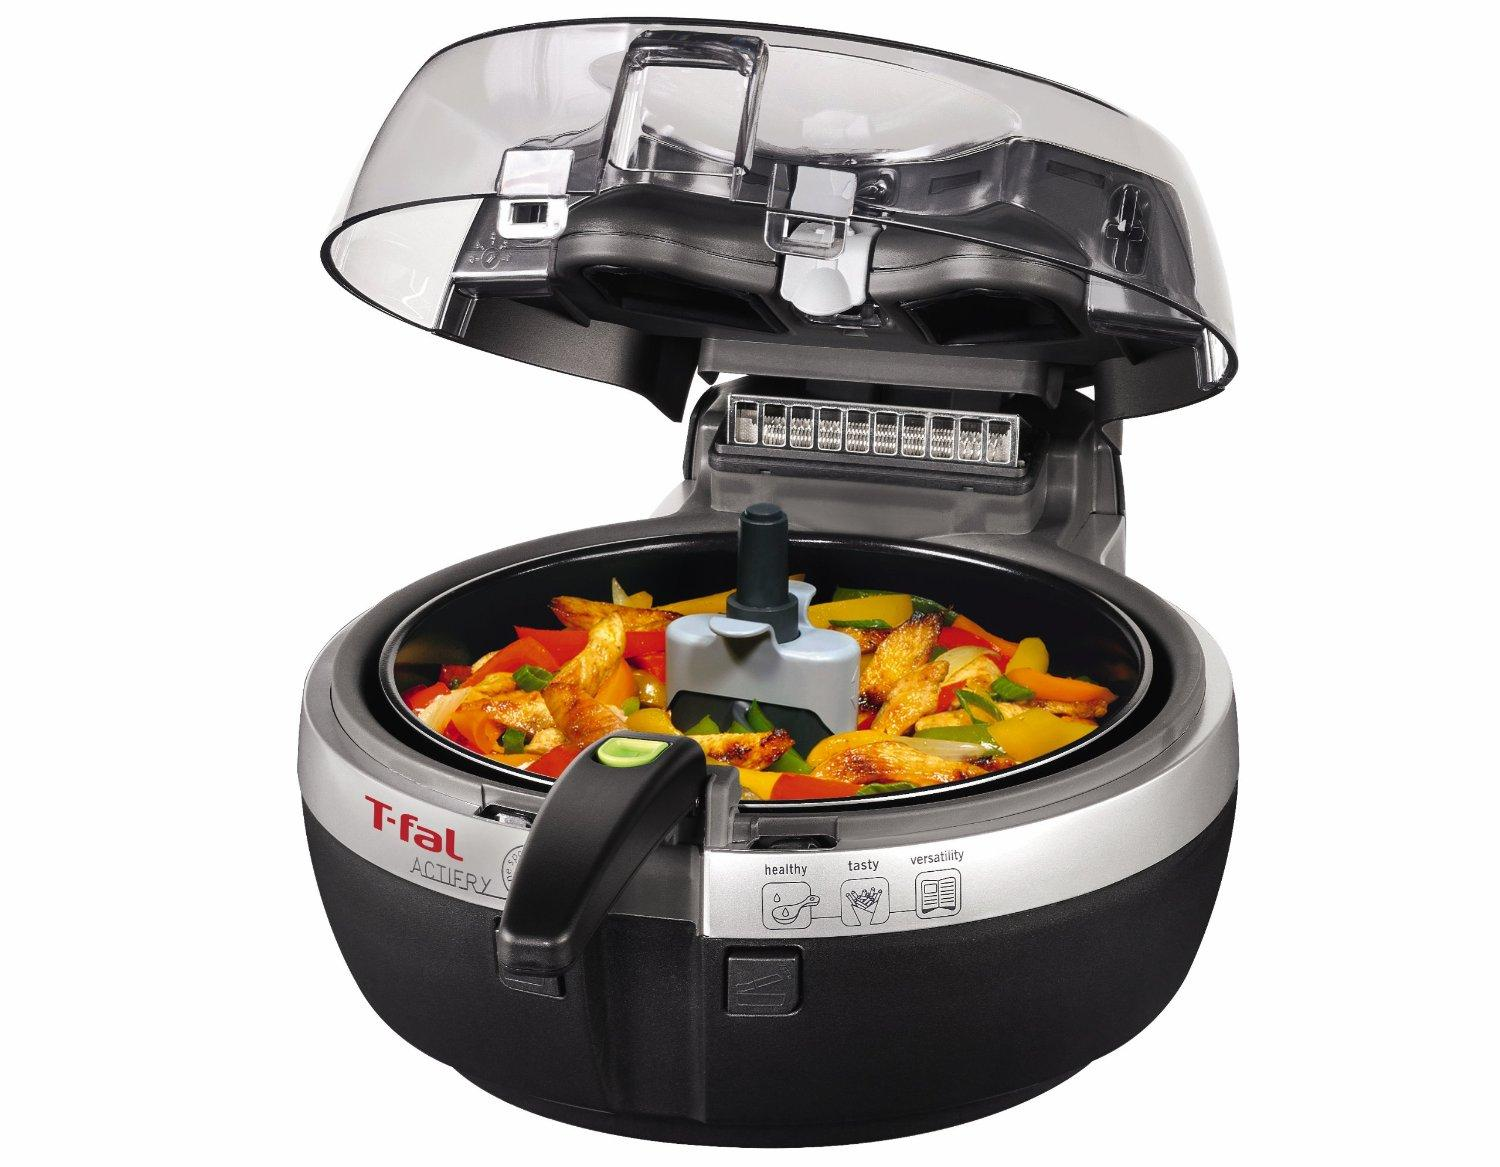 $134.95 T-fal FZ7002 ActiFry Low-Fat Healthy Dishwasher Safe Multi-Cooker